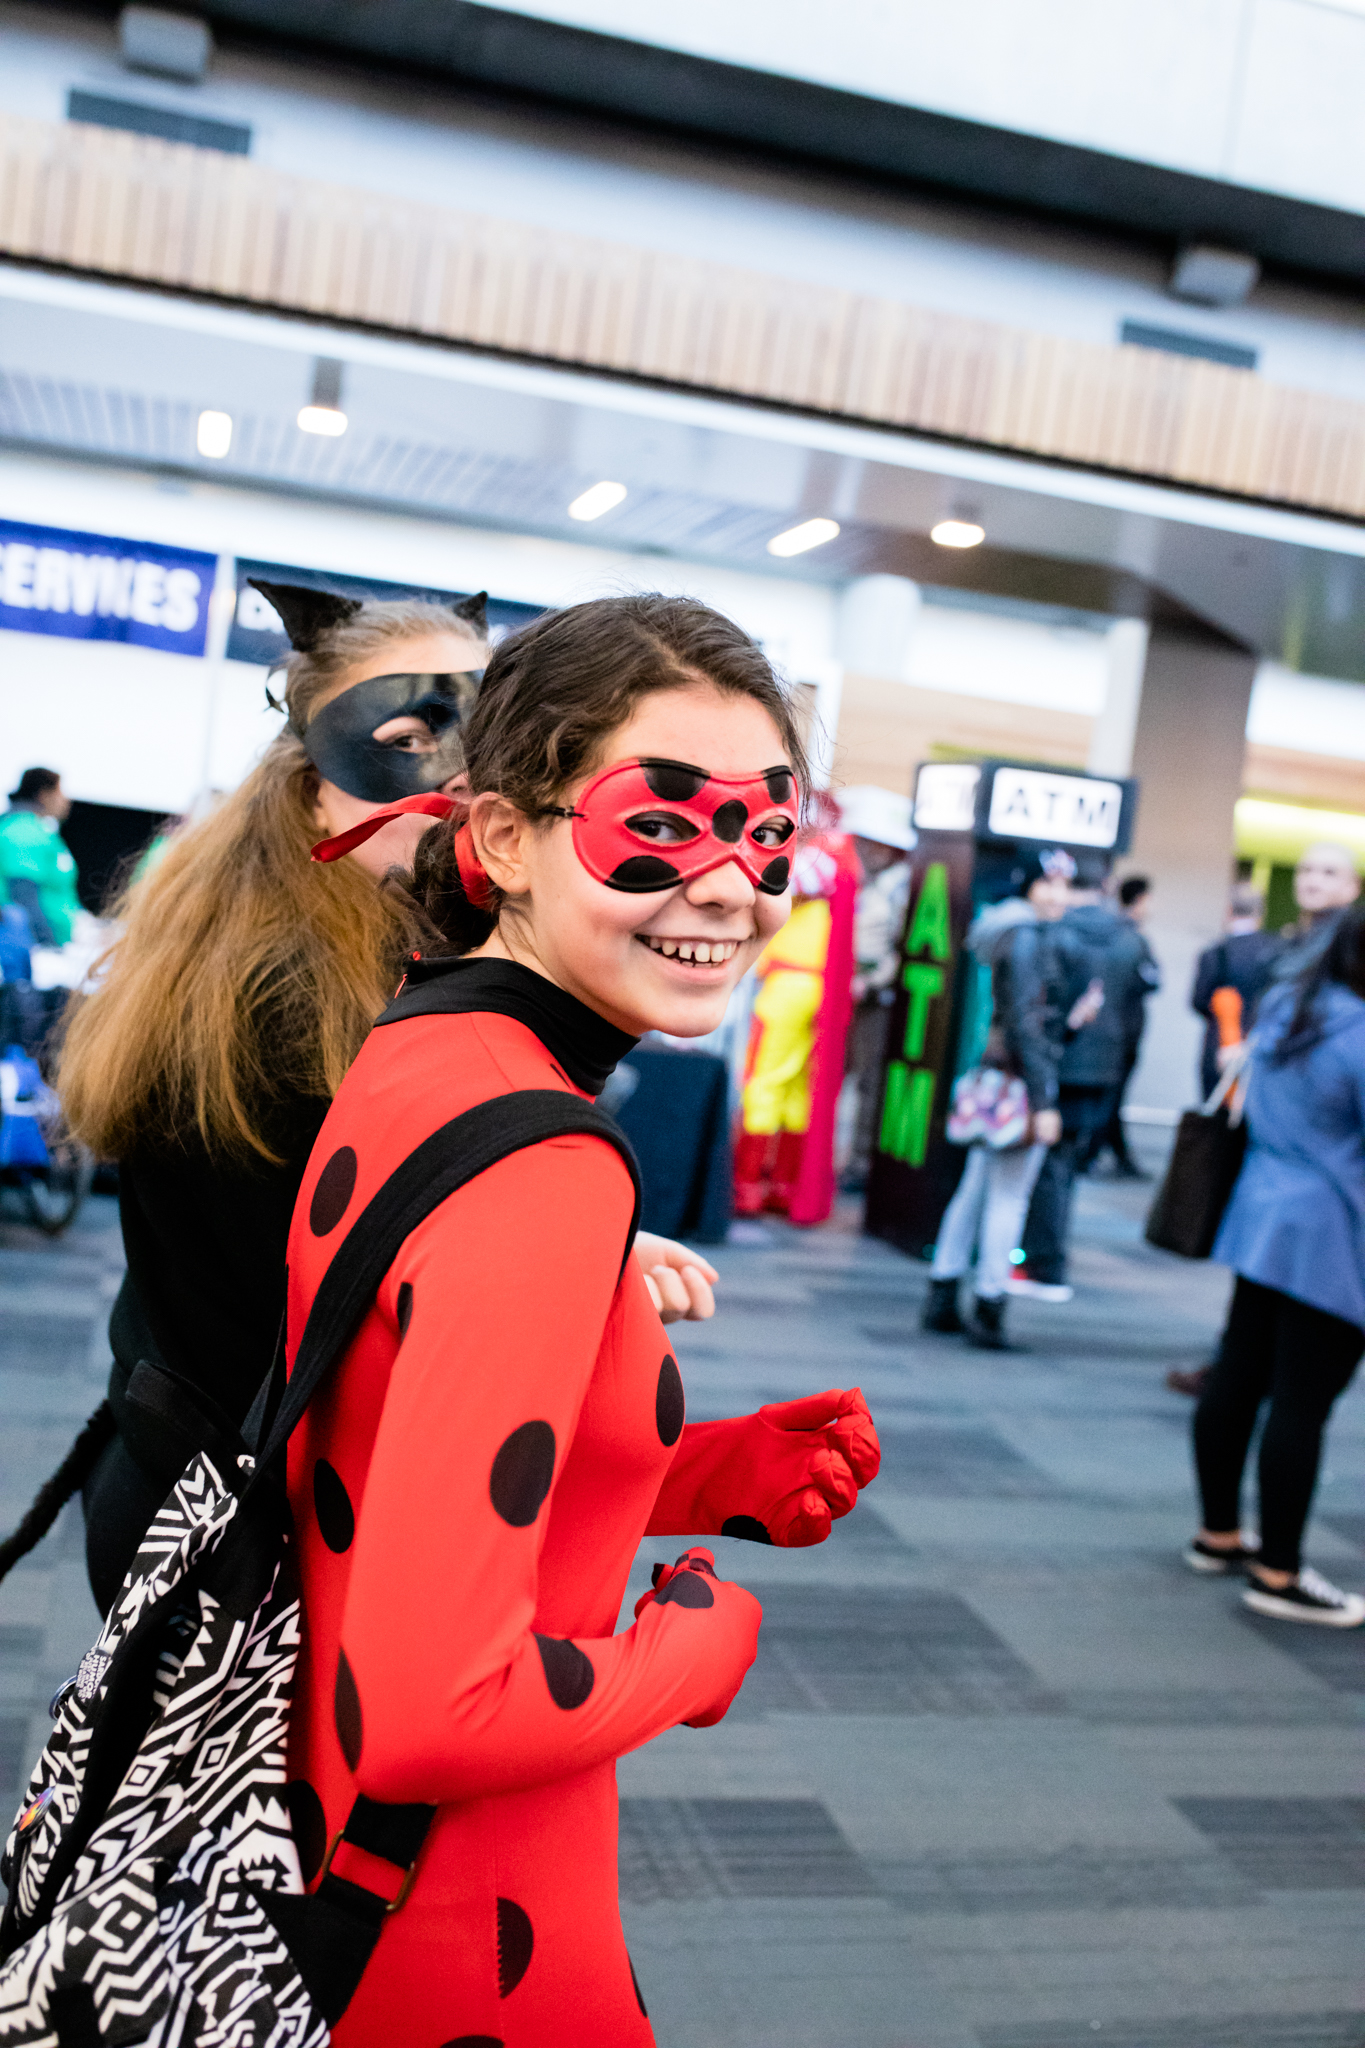 Miraculous Ladybug cosplay by Anika Vodicka at Heroes and Villains FanFest and Walker Stalker | Lenkaland Photography